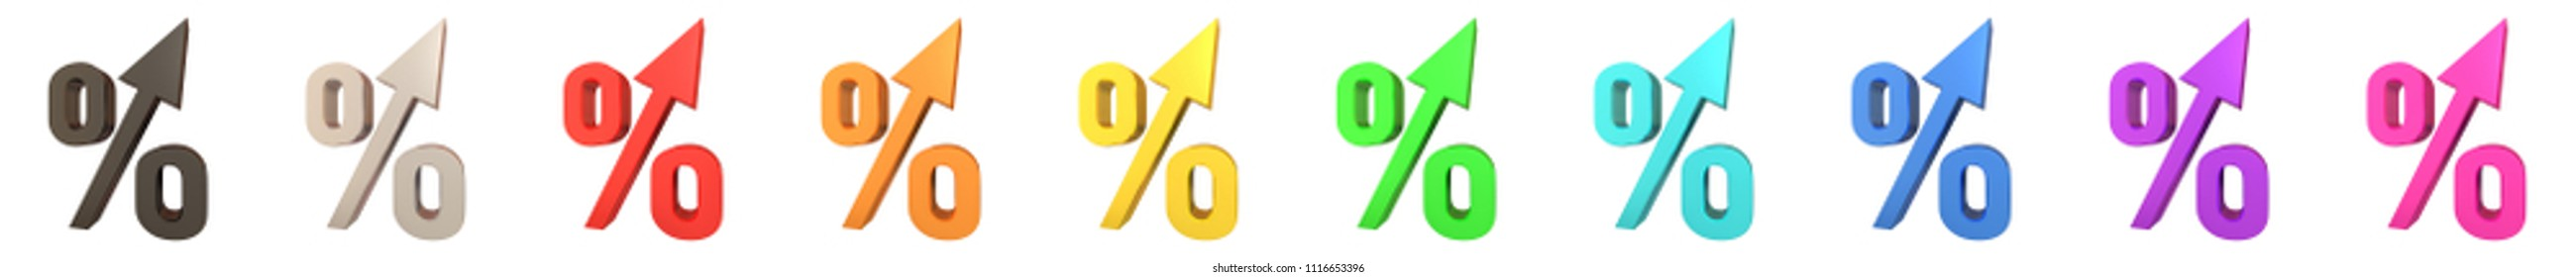 percent sign percentage symbol 3d illustration red interest rate yields raising up profits earnings winnings sign symbol isolated on white background